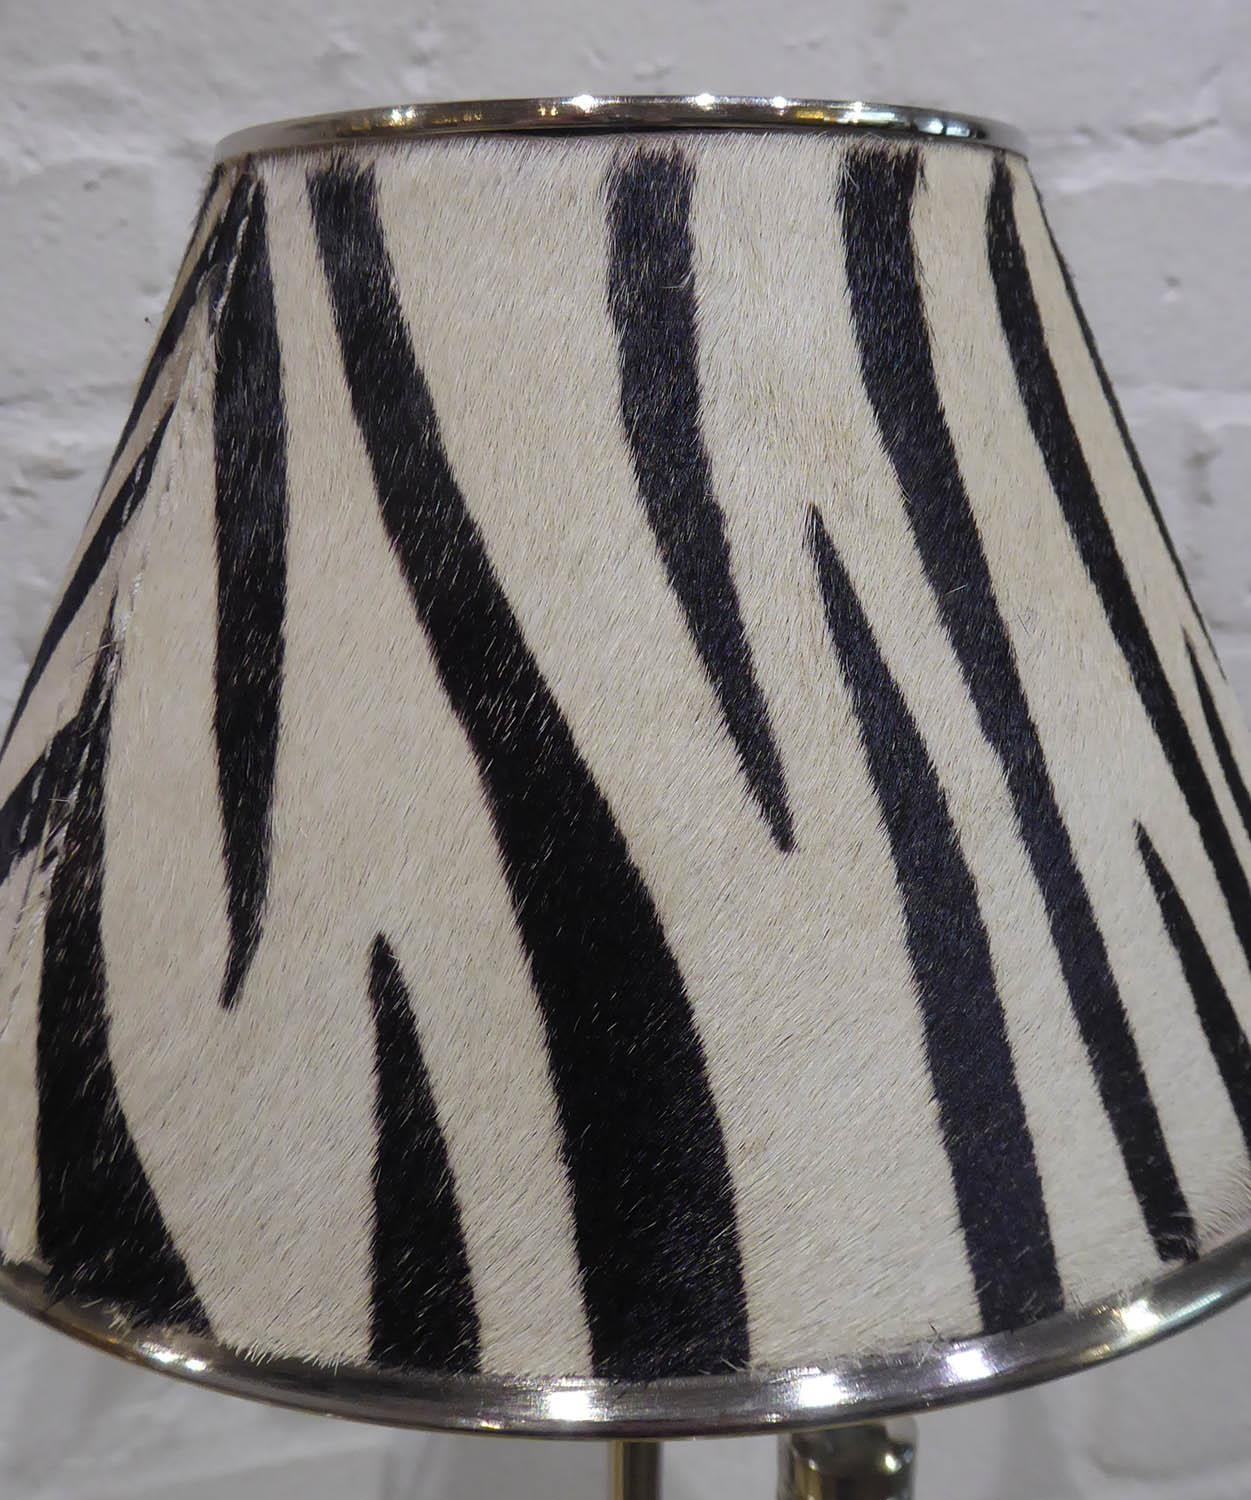 LIBRARY READING LAMPS, a pair, faux zebra skin shades, 89cm at tallest approx. (2) - Image 3 of 3